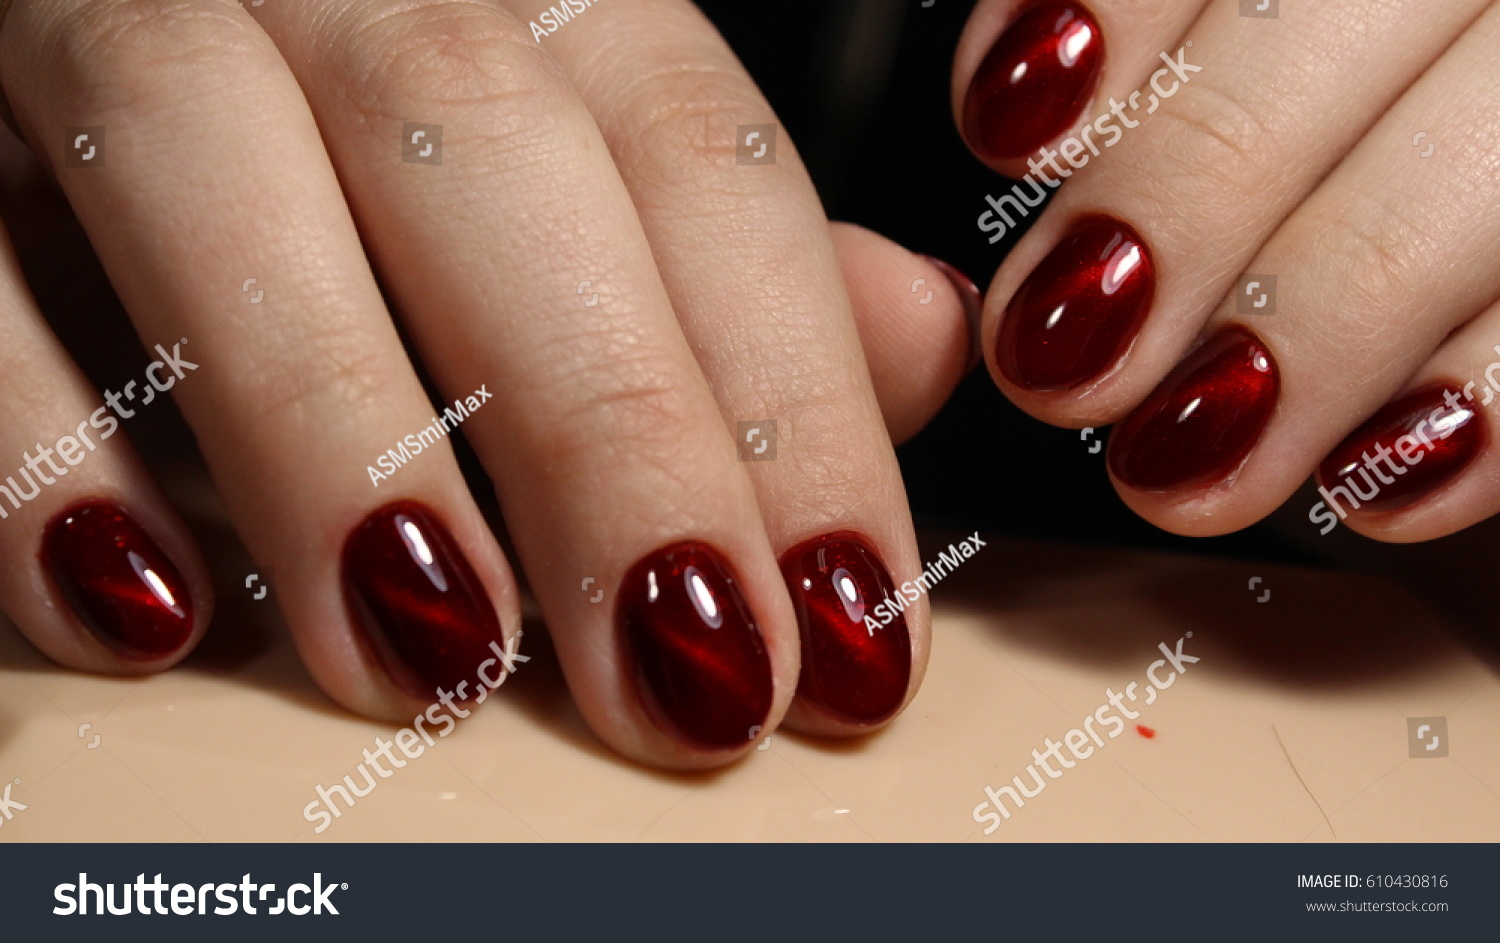 Manicure Nails Red Cats Eye Stock Photo (Royalty Free) 610430816 ...